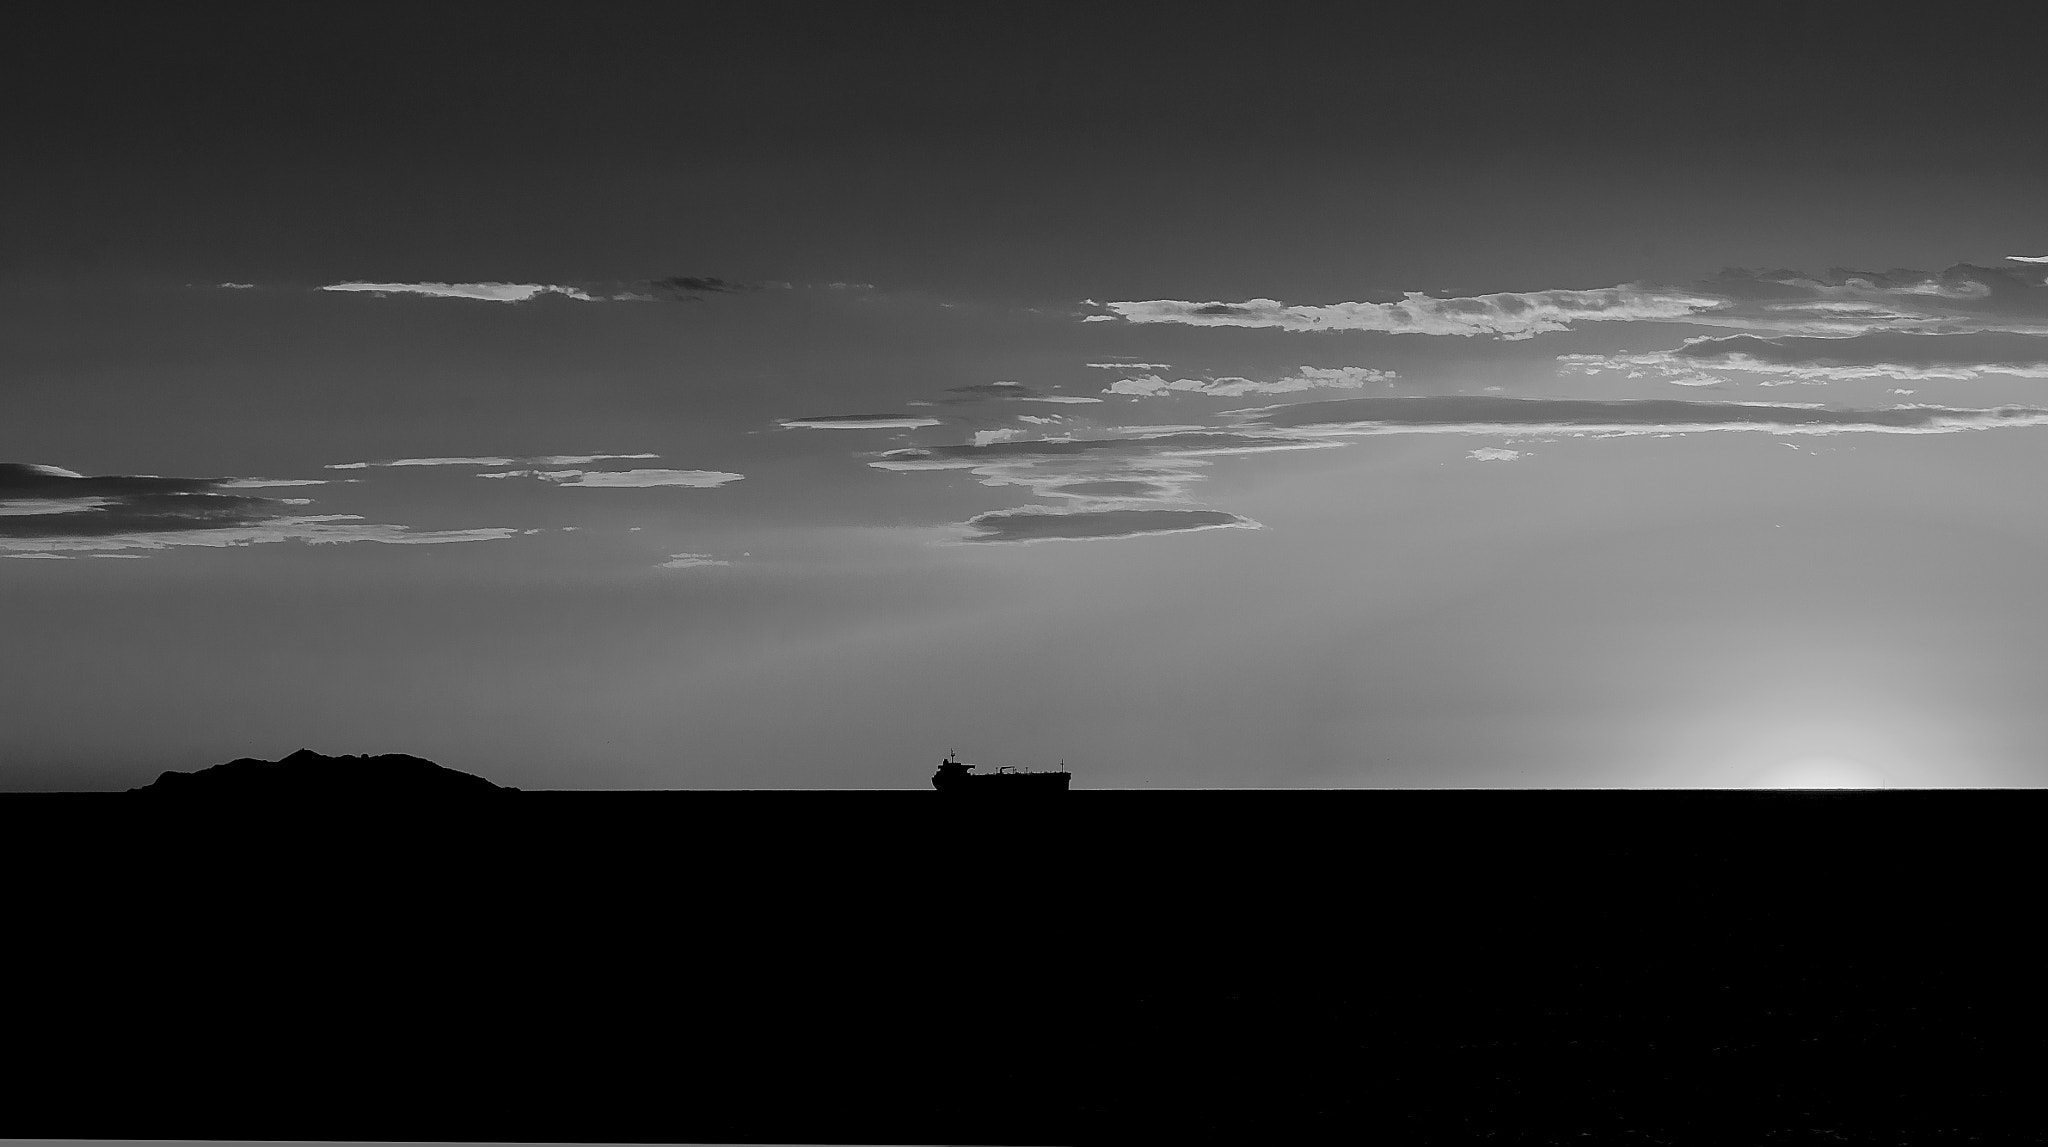 Photograph Sunset in B/W by Dario Lenza on 500px